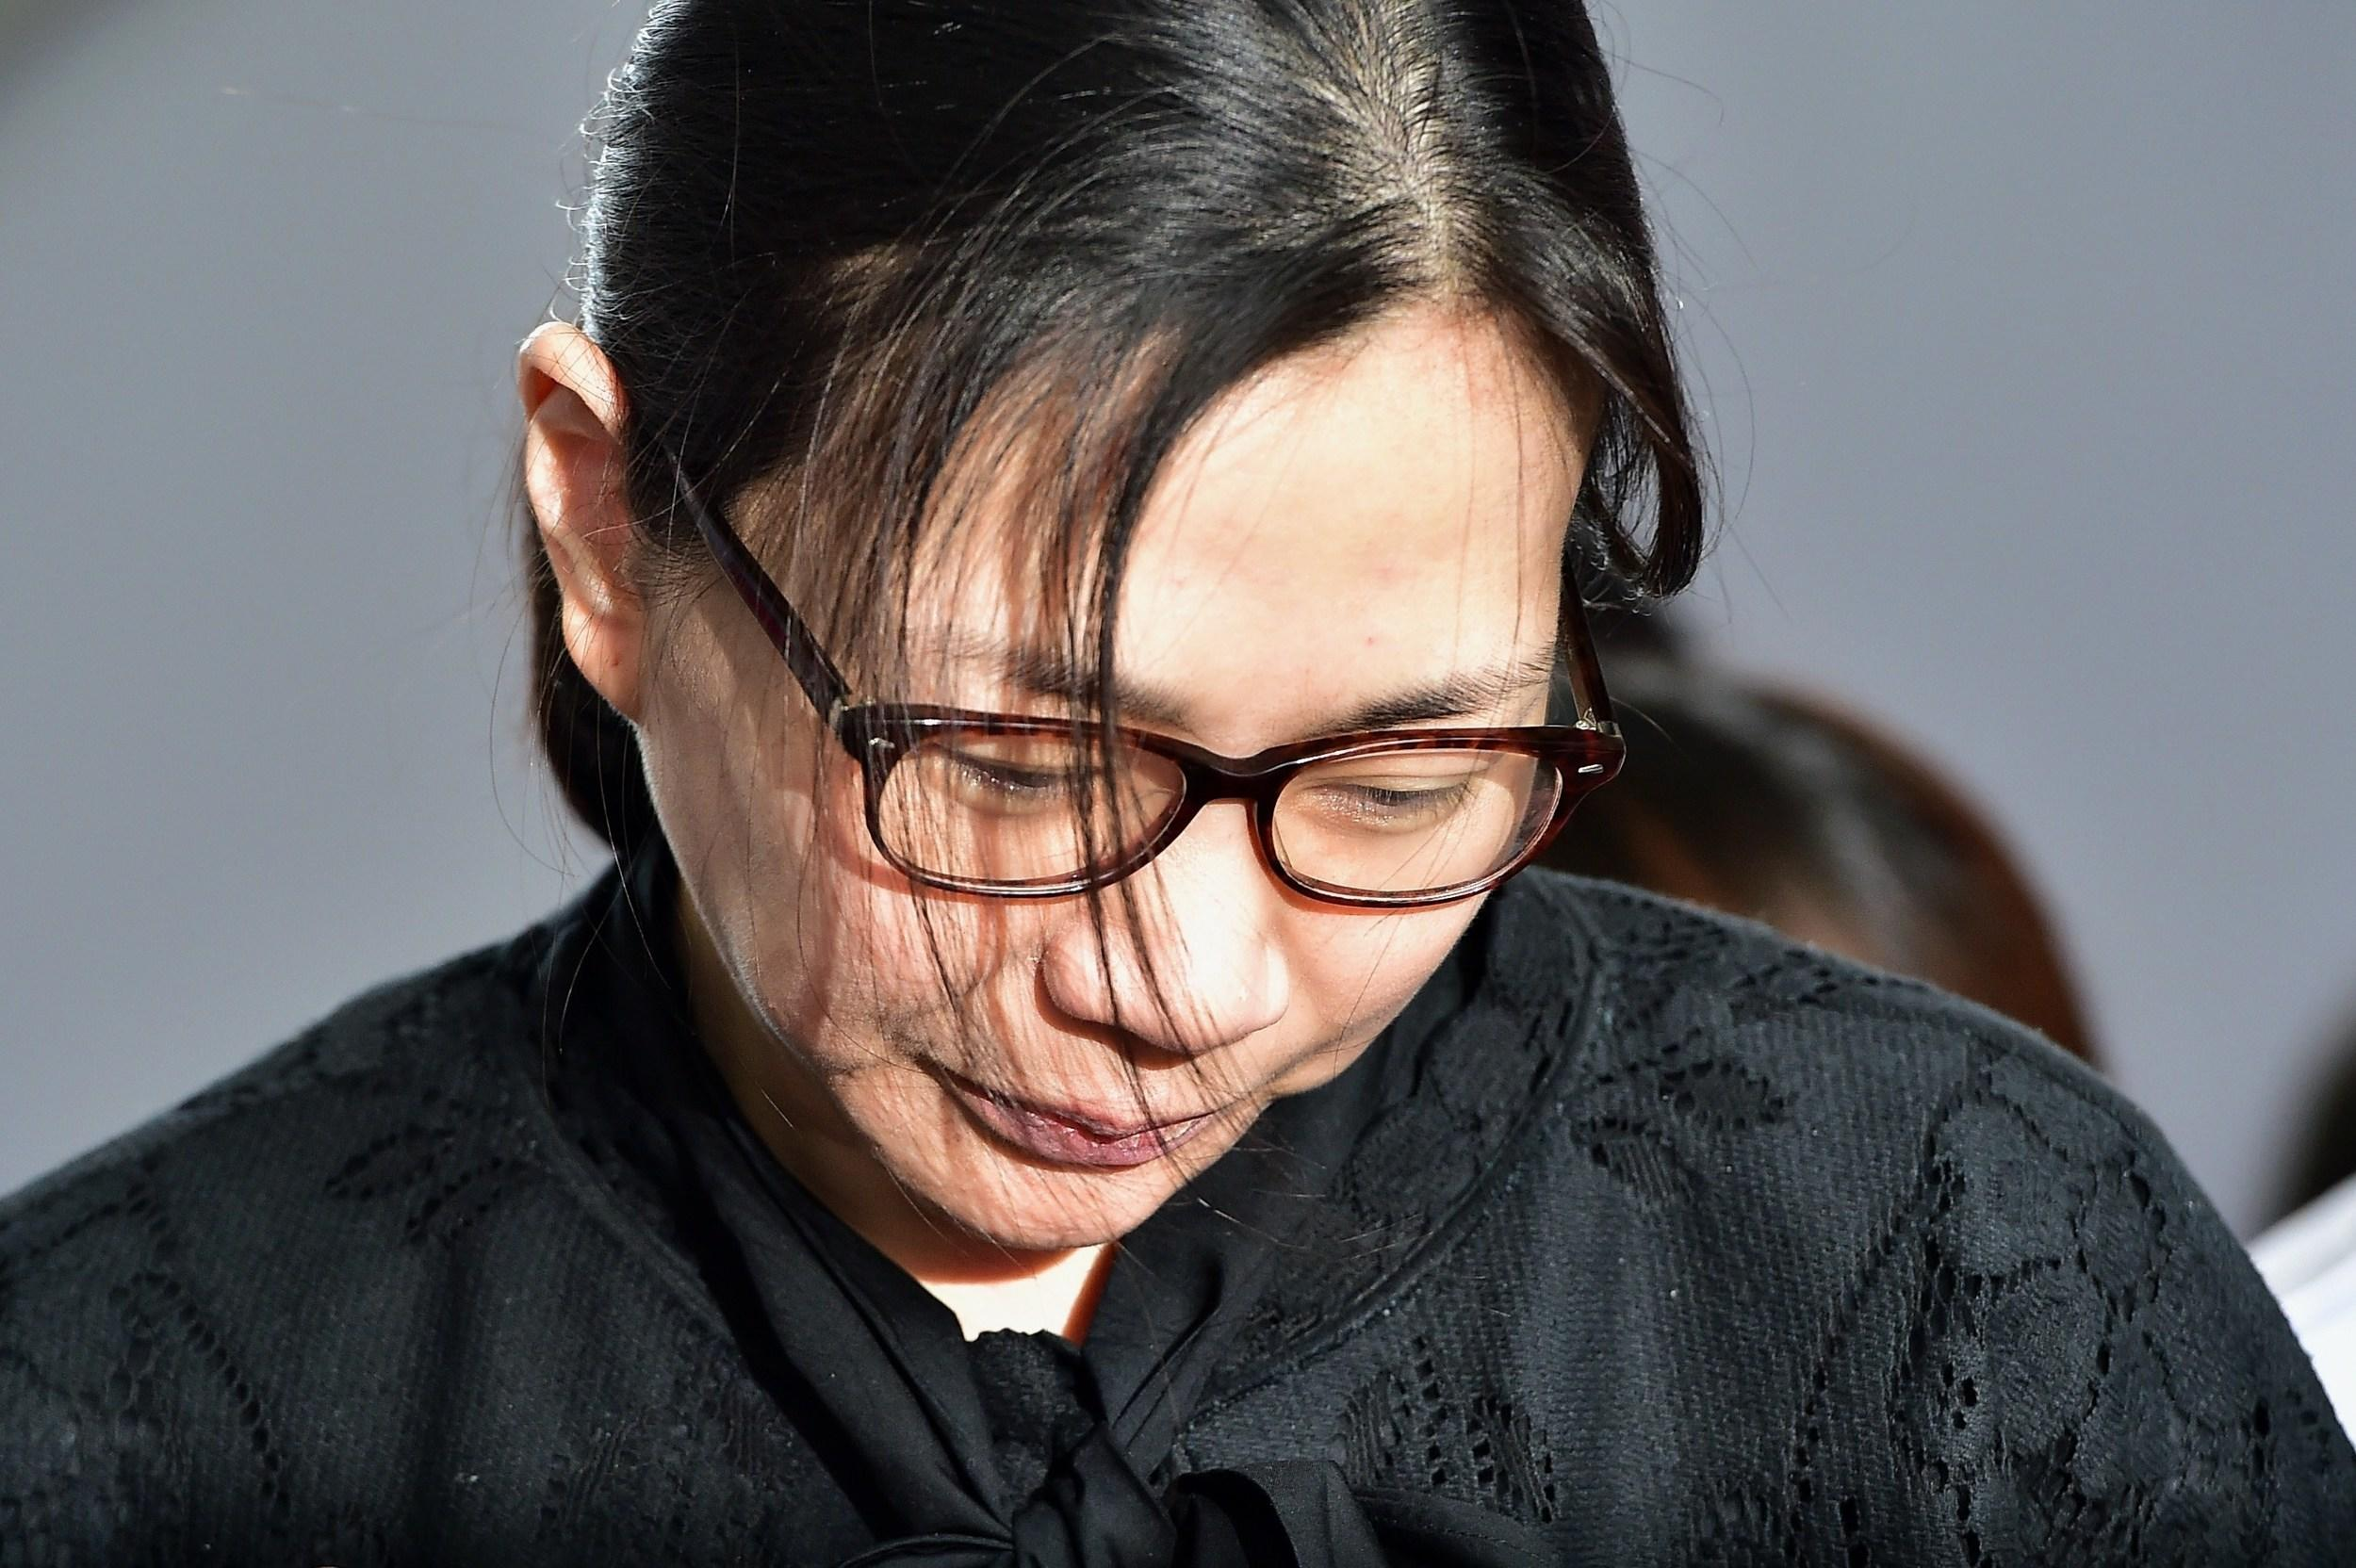 """<p>A top executive at Korean Air literally went nuts when she flew first-class on the airline in 2014. Cho Hyun-ah, who is the chairman's daughter, was forced to resign and sentenced to jail after becoming <a href=""""https://www.aol.co.uk/travel/2014/12/09/korean-air-executive-delays-plane-cabin-crew-served-nuts/"""" target=""""_blank"""">enraged when she was served a bag of macadamia nuts instead of nuts on a plate</a>. She forced the taxiing flight from New York to Seoul to return to the gate to replace the steward. Mrs Cho was charged for using violence against flight crew and forcing a flight to change its normal route.</p>"""